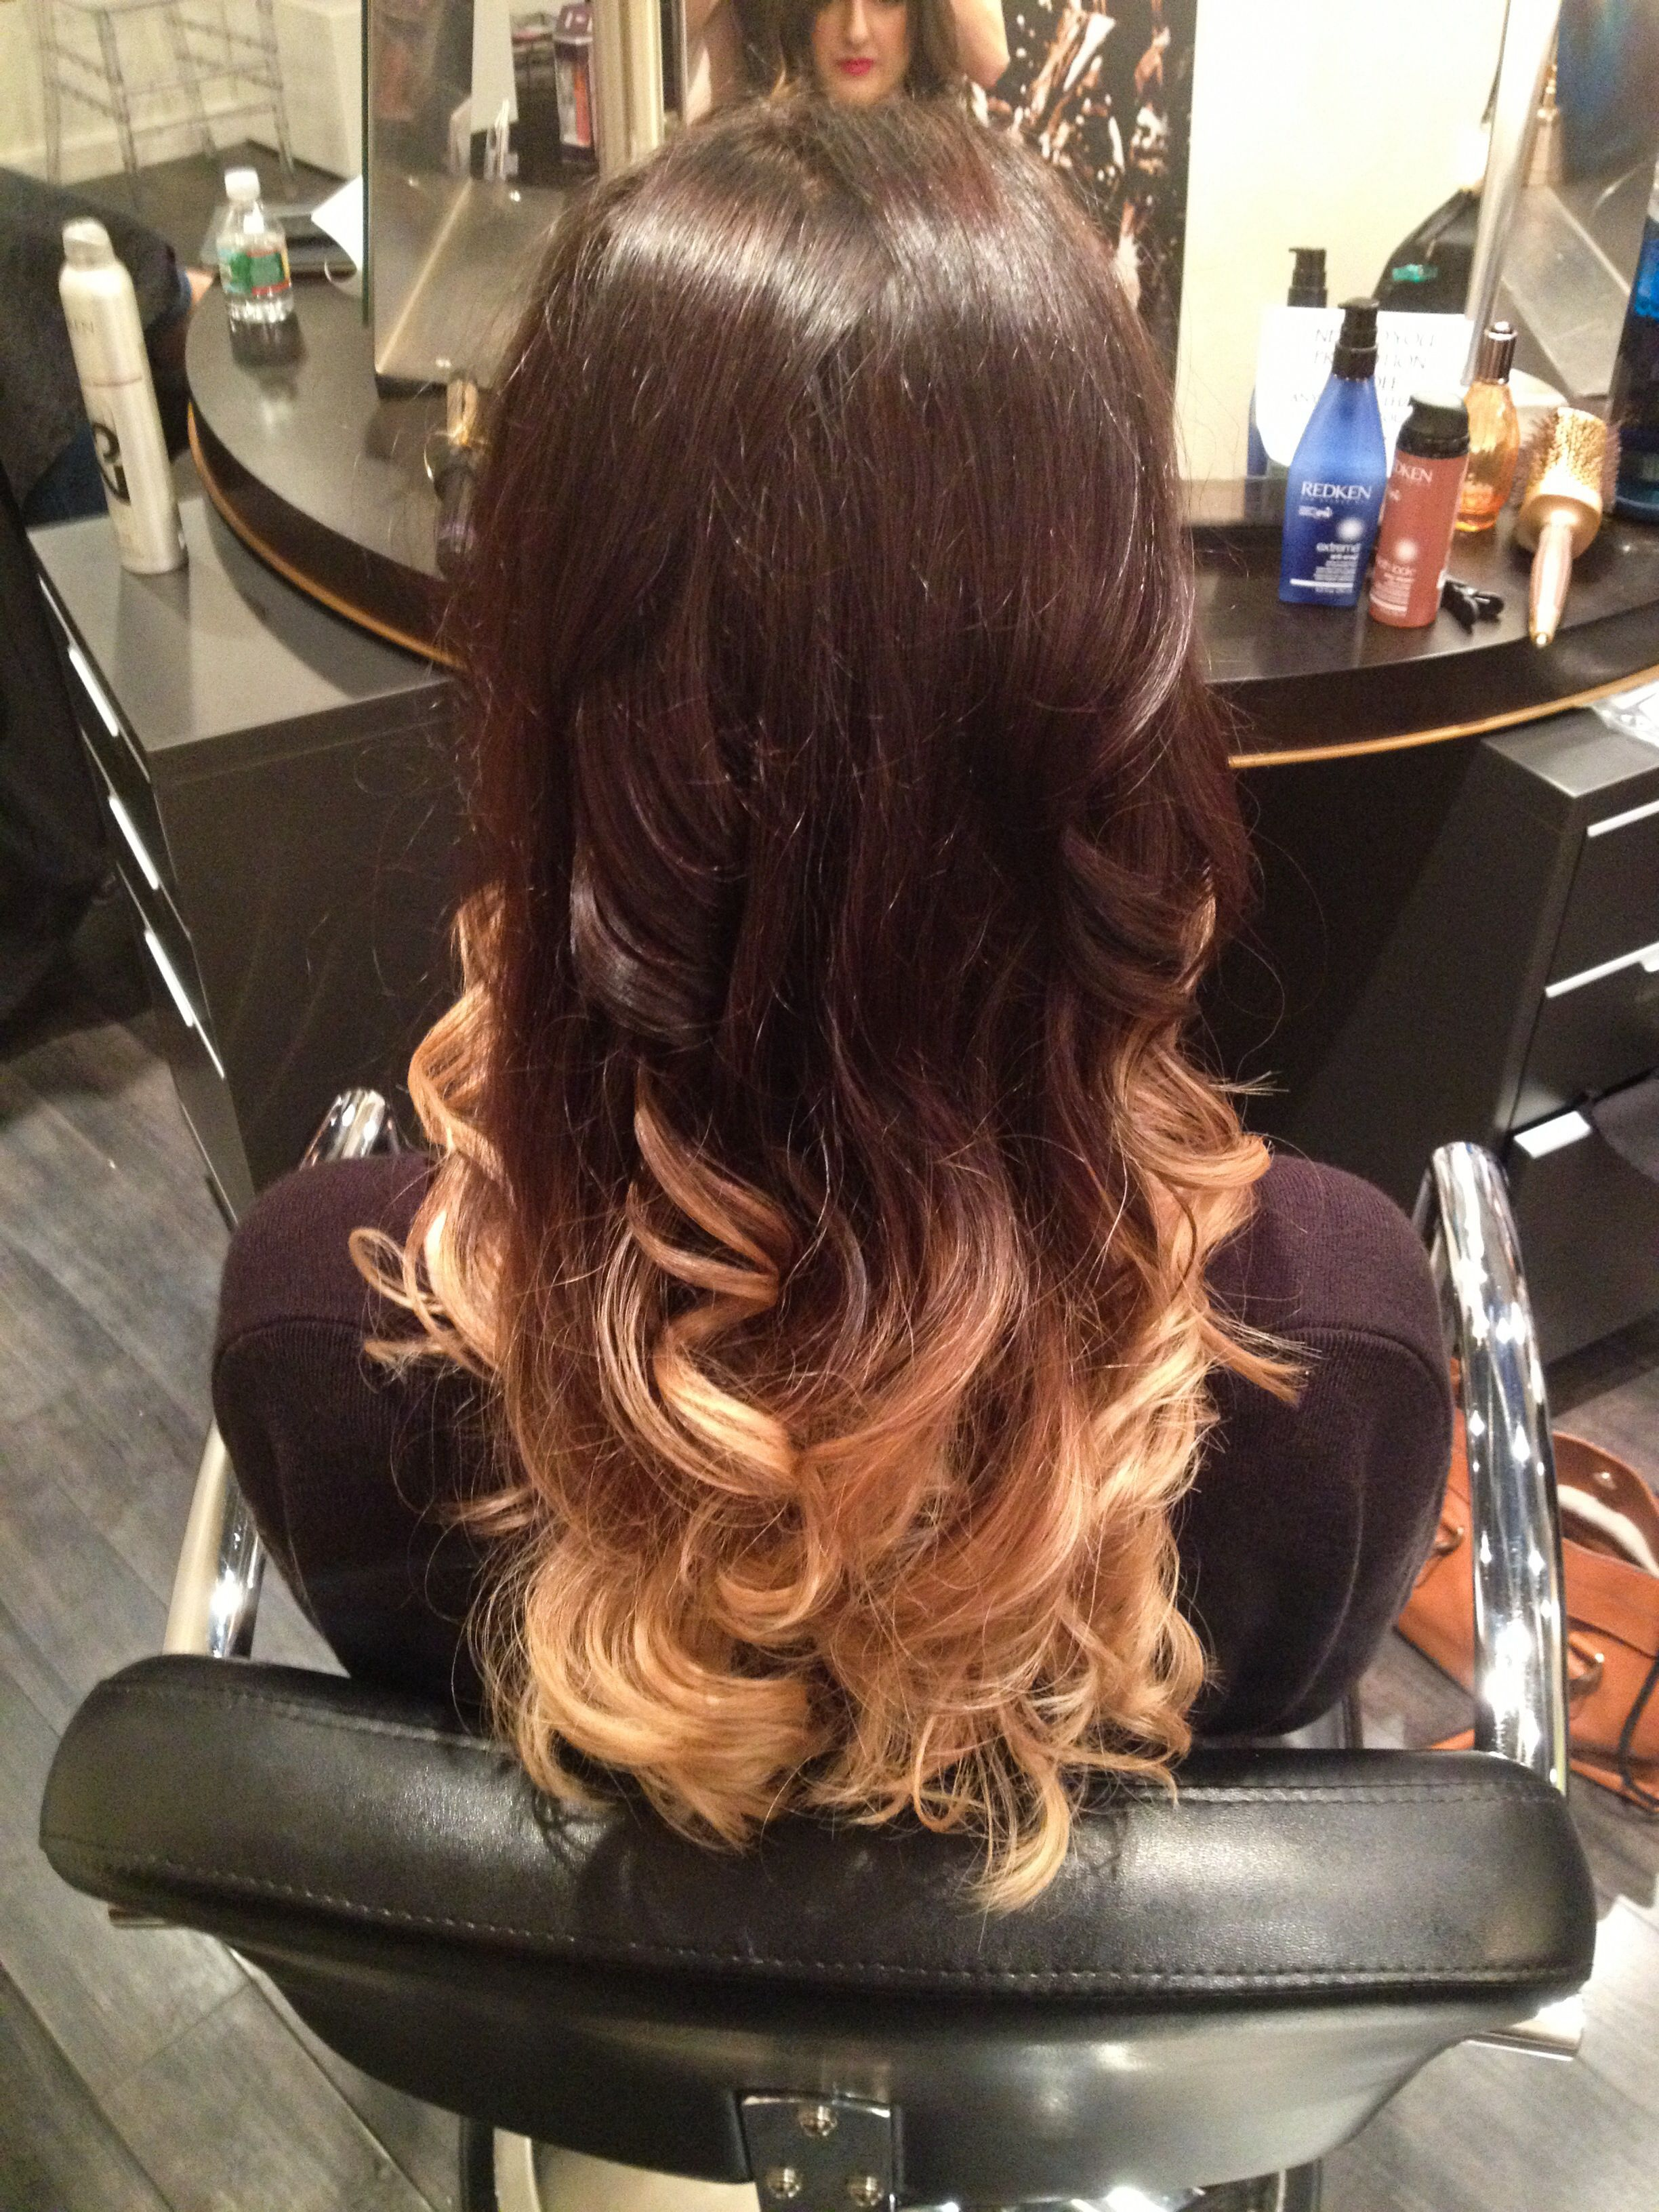 Princess Hairstyles The 26 Most Charming Ideas For 2020: Ombre- Dark To Light